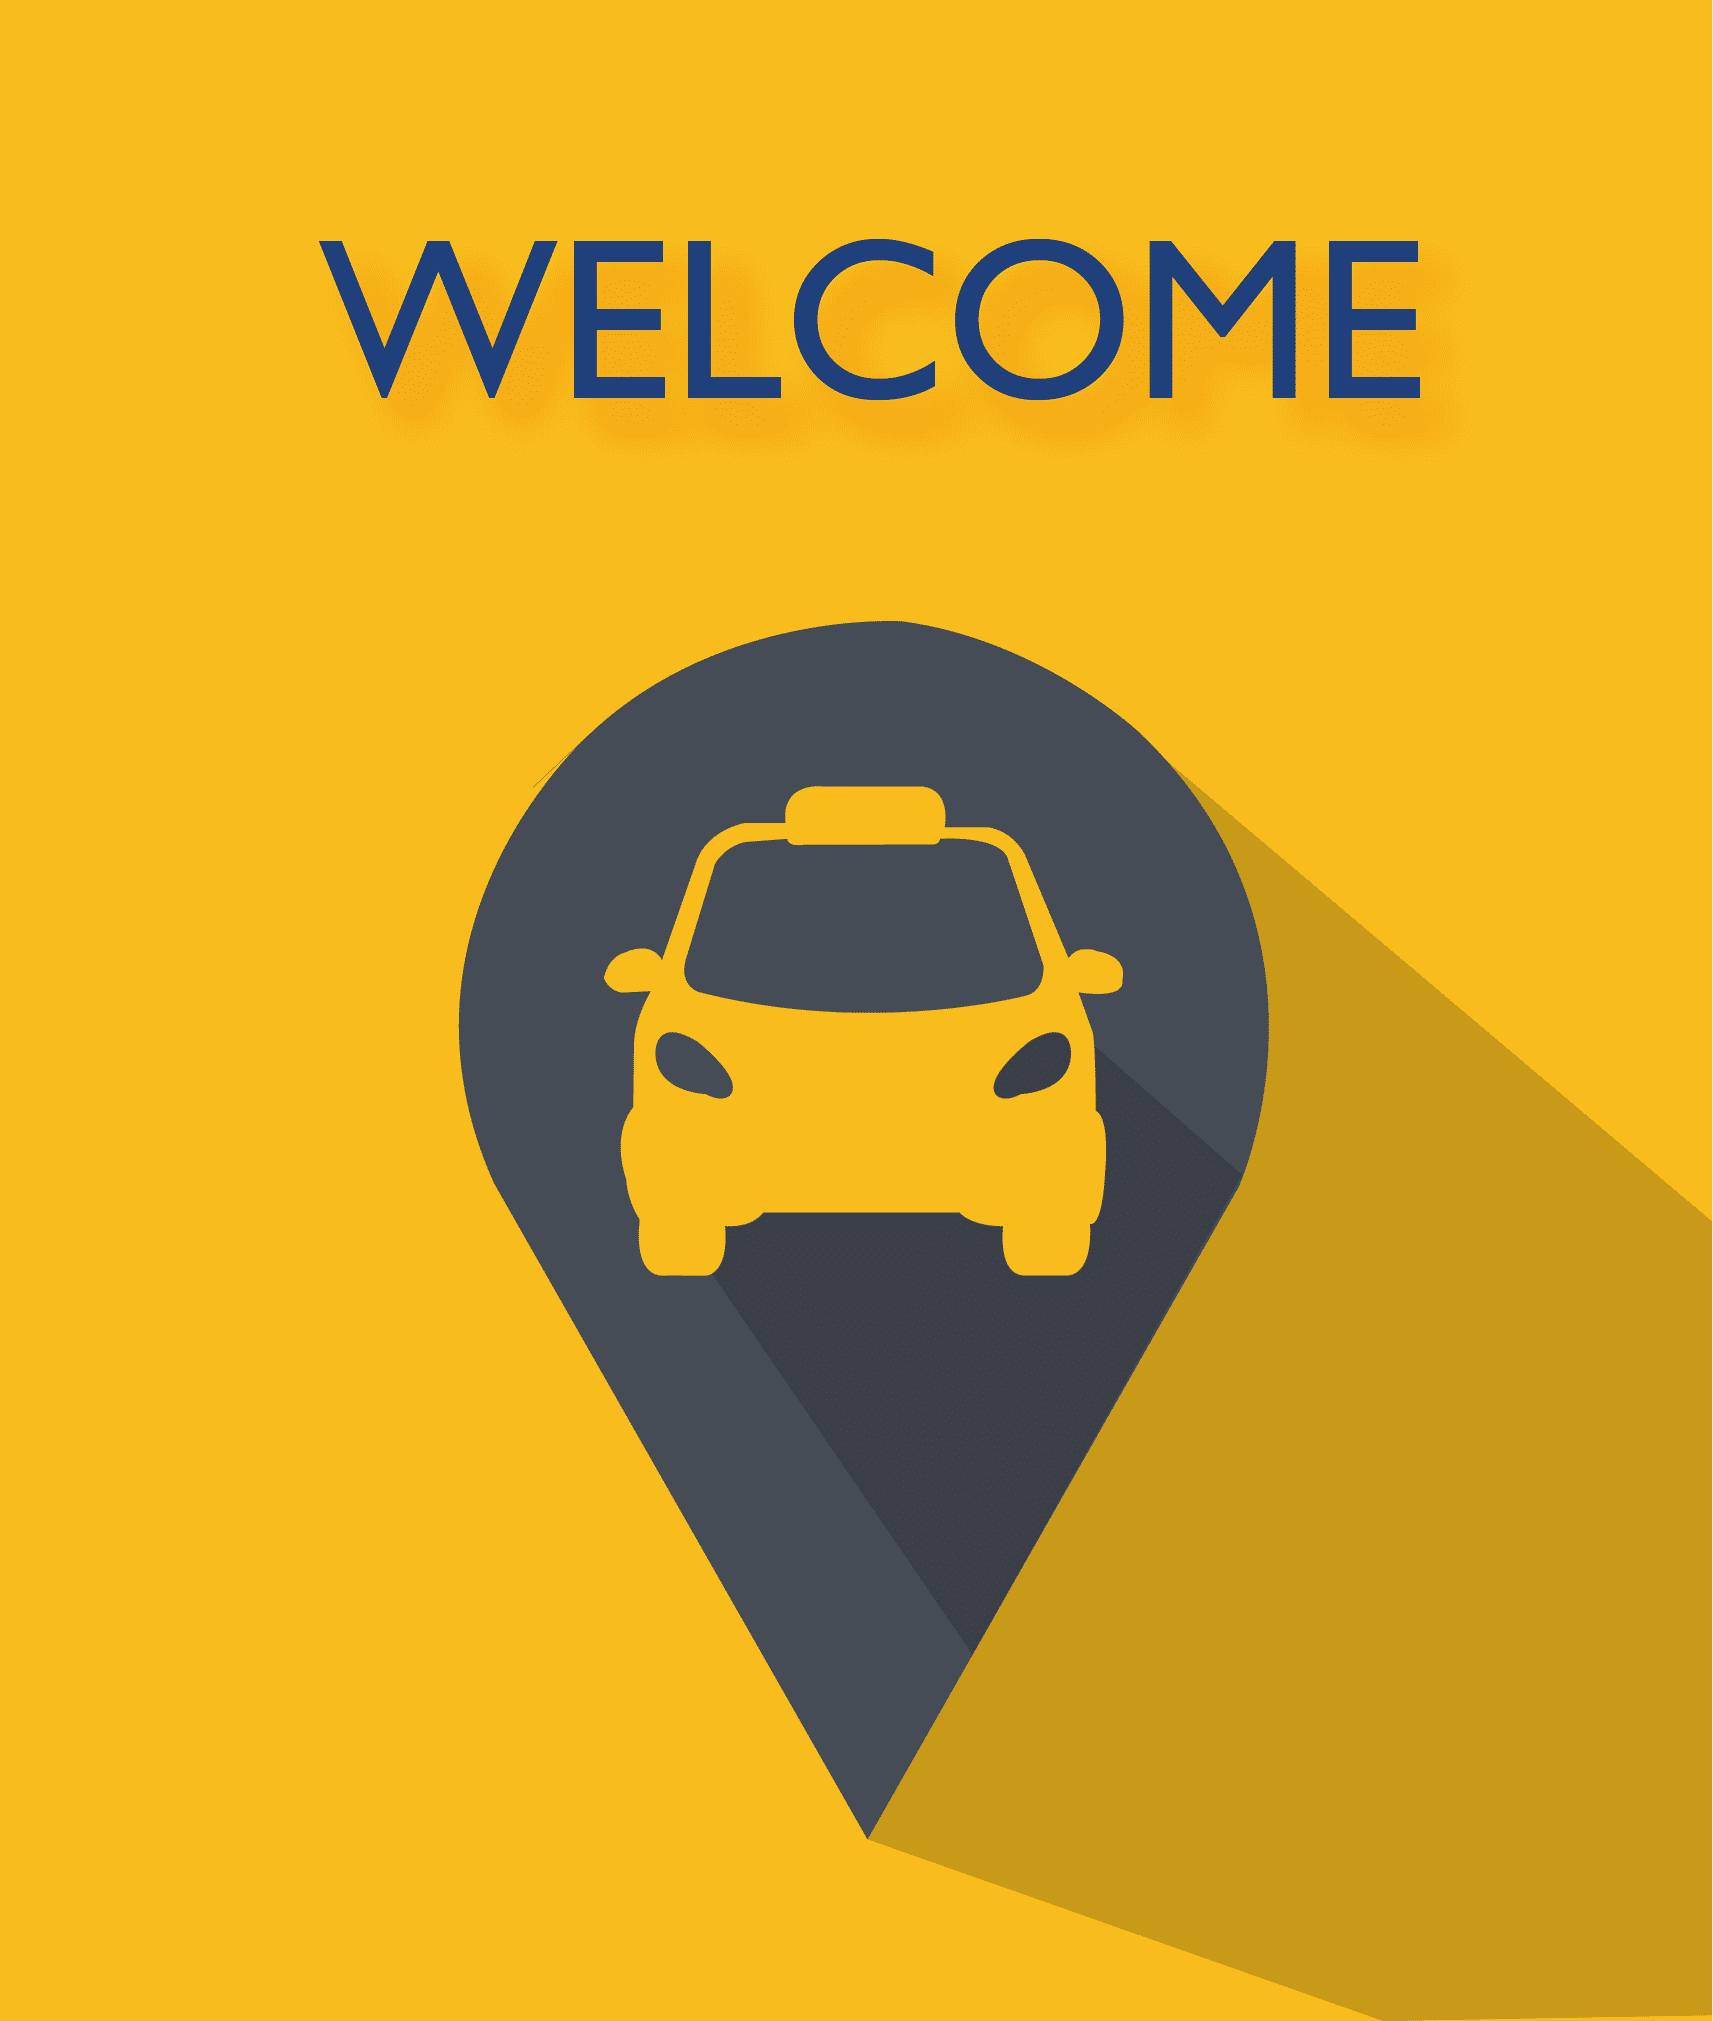 welcome text with car